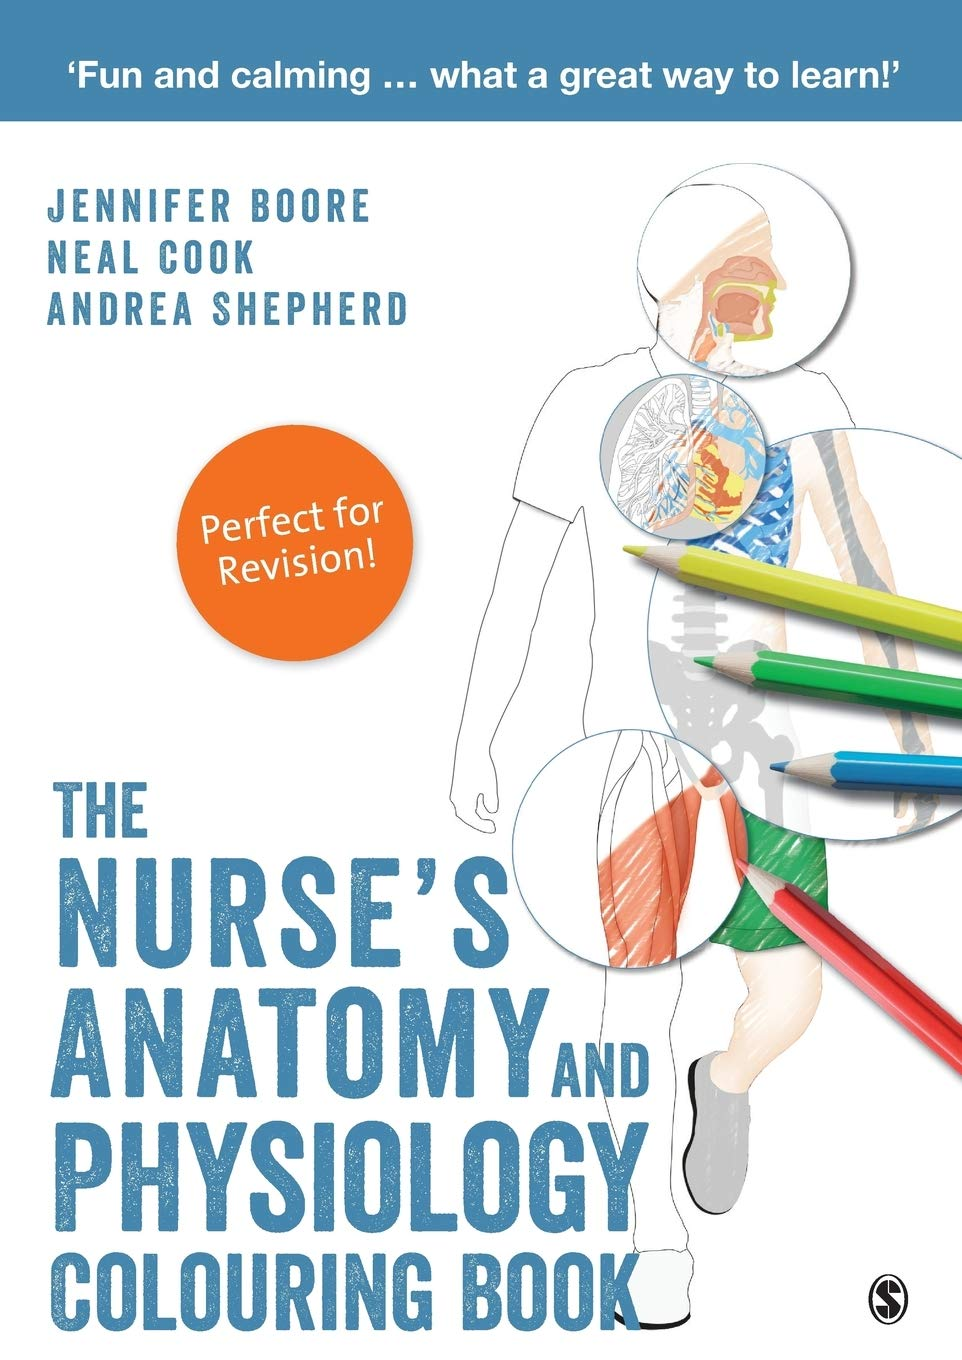 - The Nurse's Anatomy And Physiology Colouring Book: Amazon.co.uk